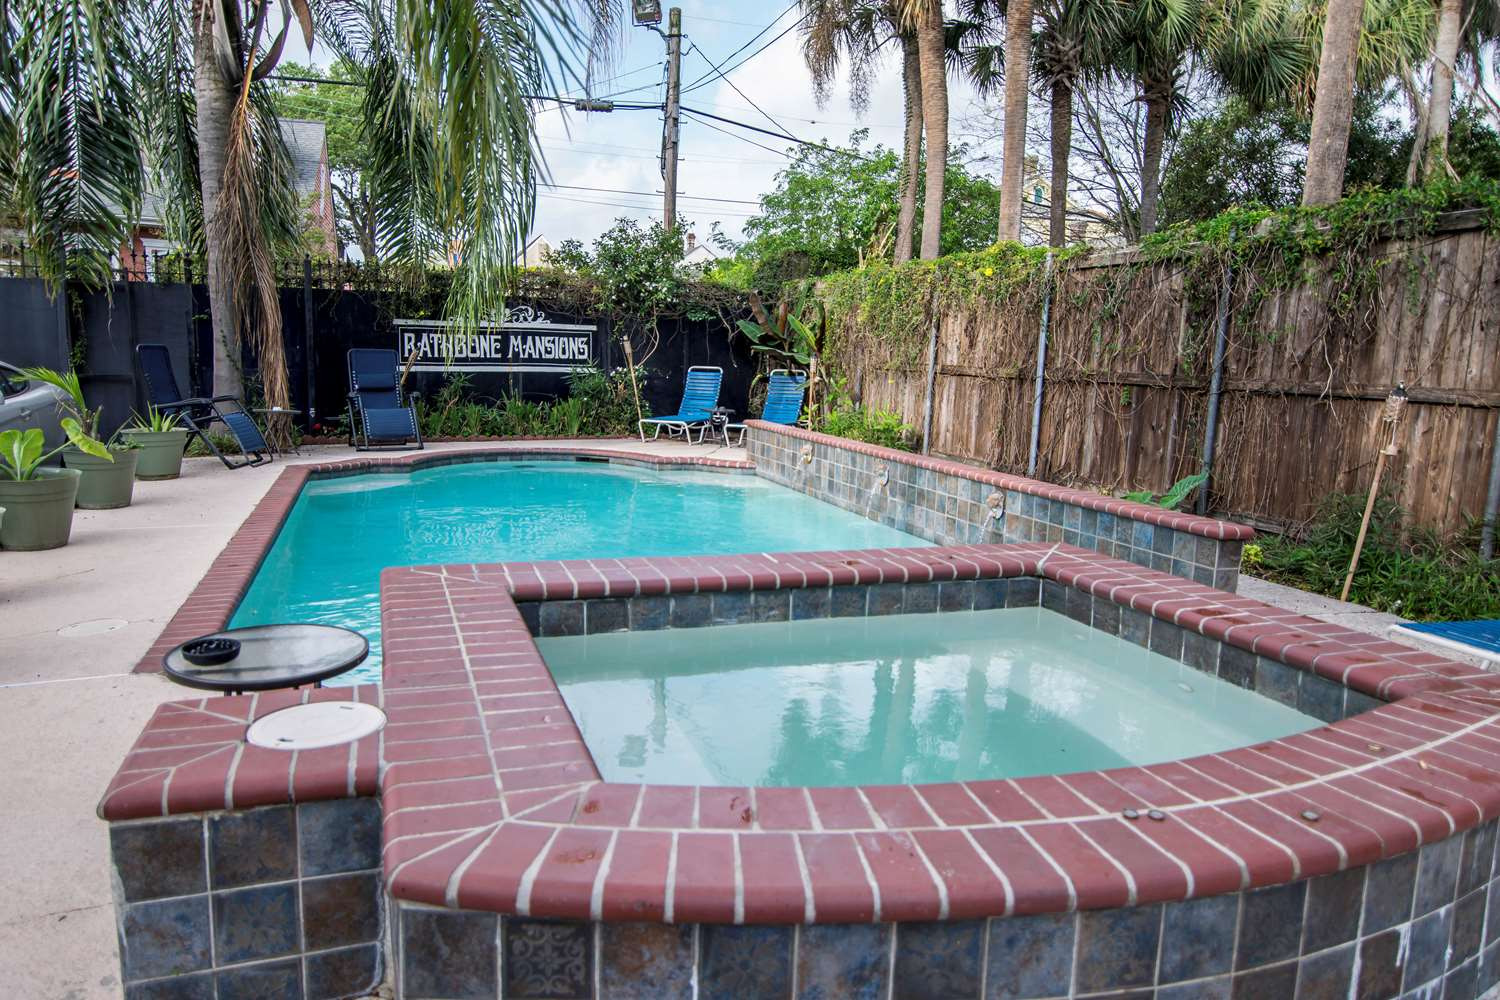 Pool - Rathbone Mansions near French Quarter New Orleans